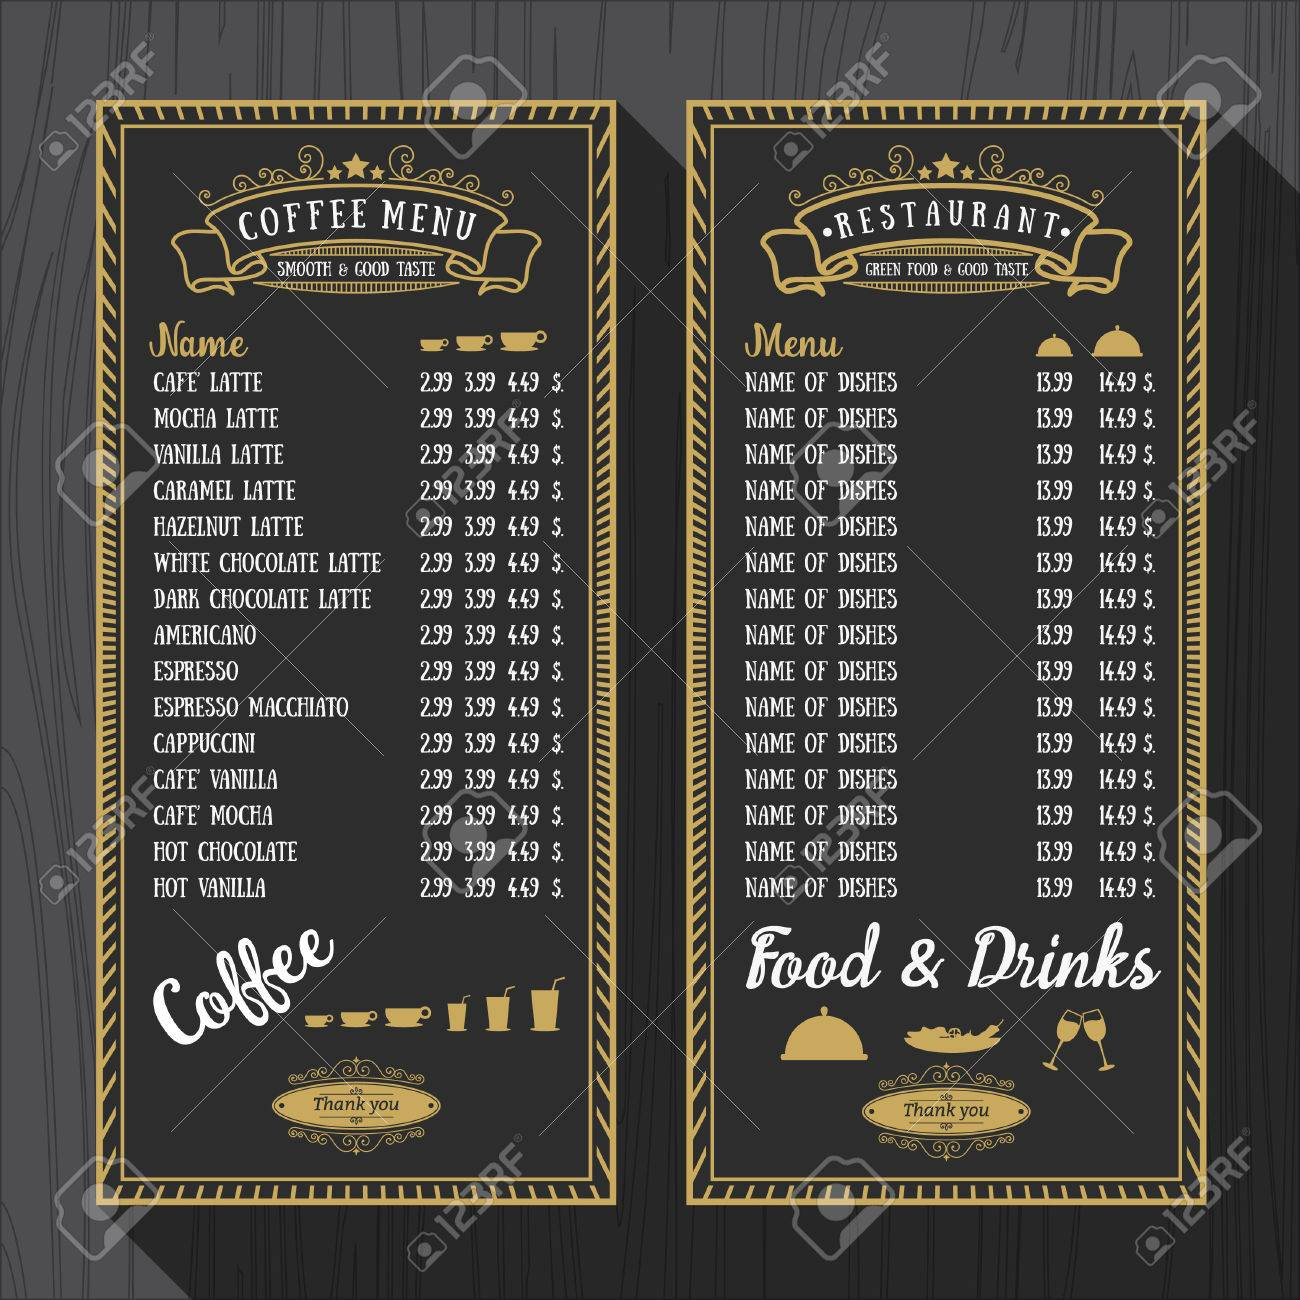 coffee menu and restaurant menu template in vintage style for